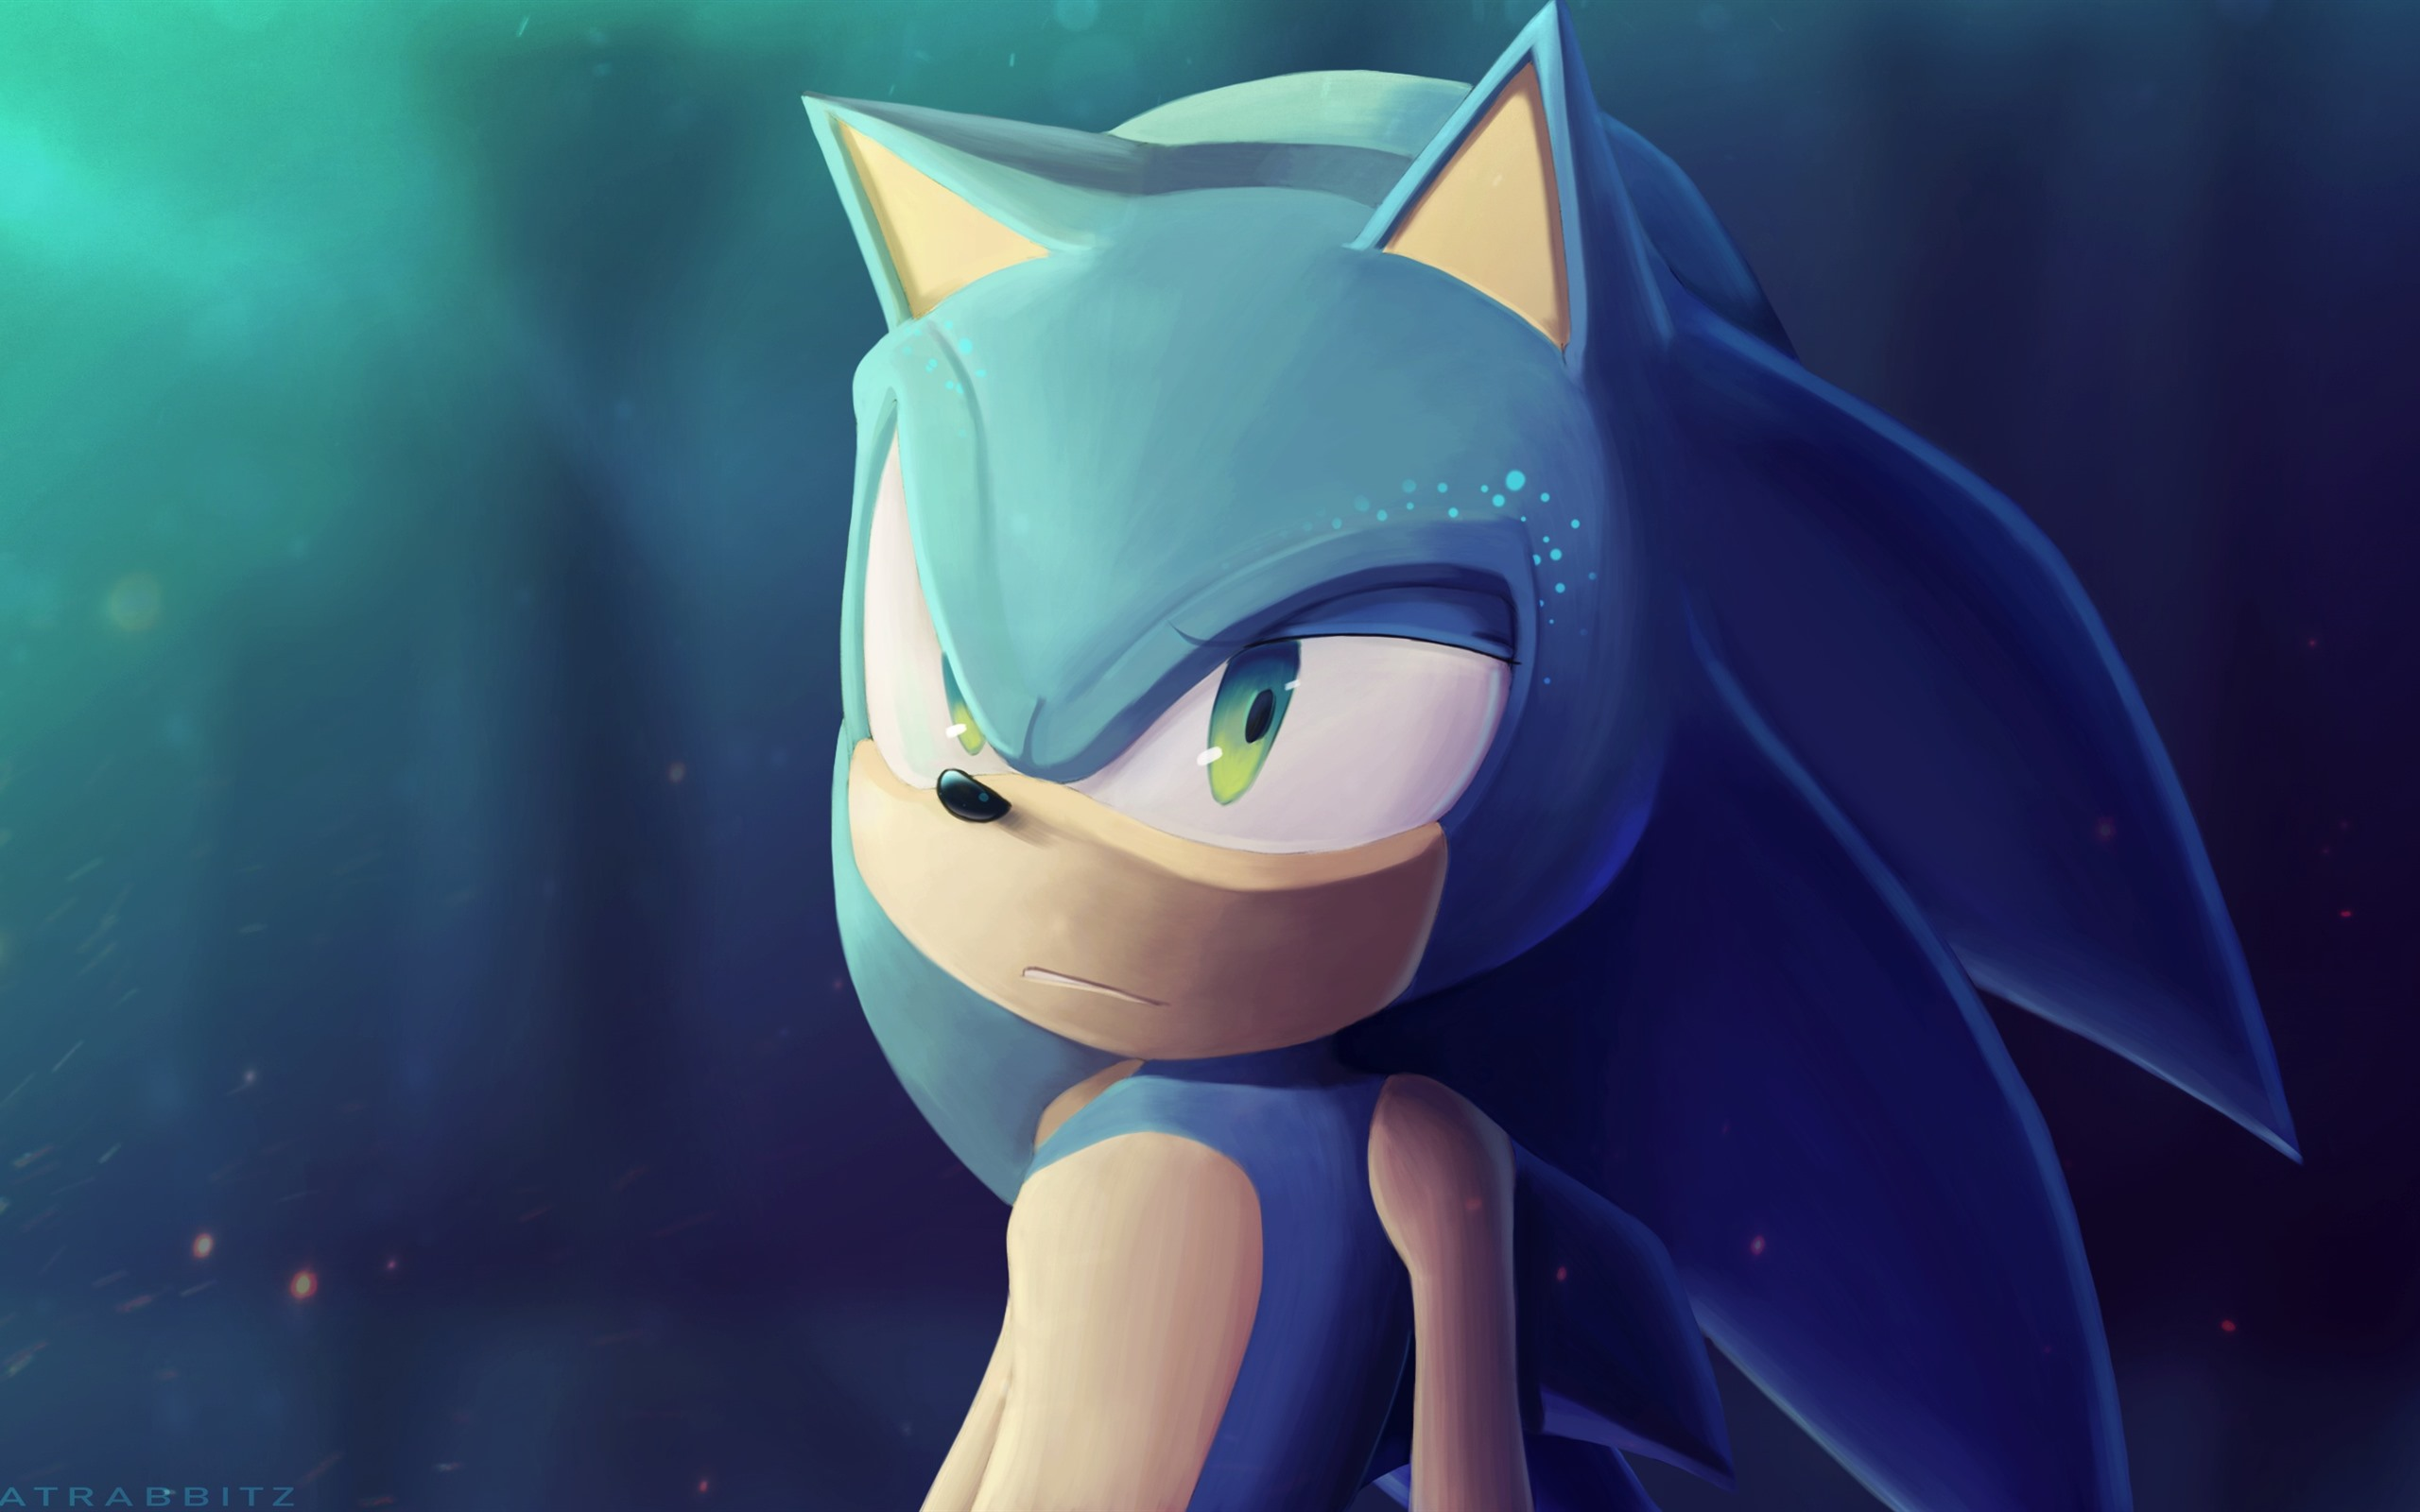 Wallpaper Sonic The Hedgehog Art Picture 2560x1600 Hd Picture Image